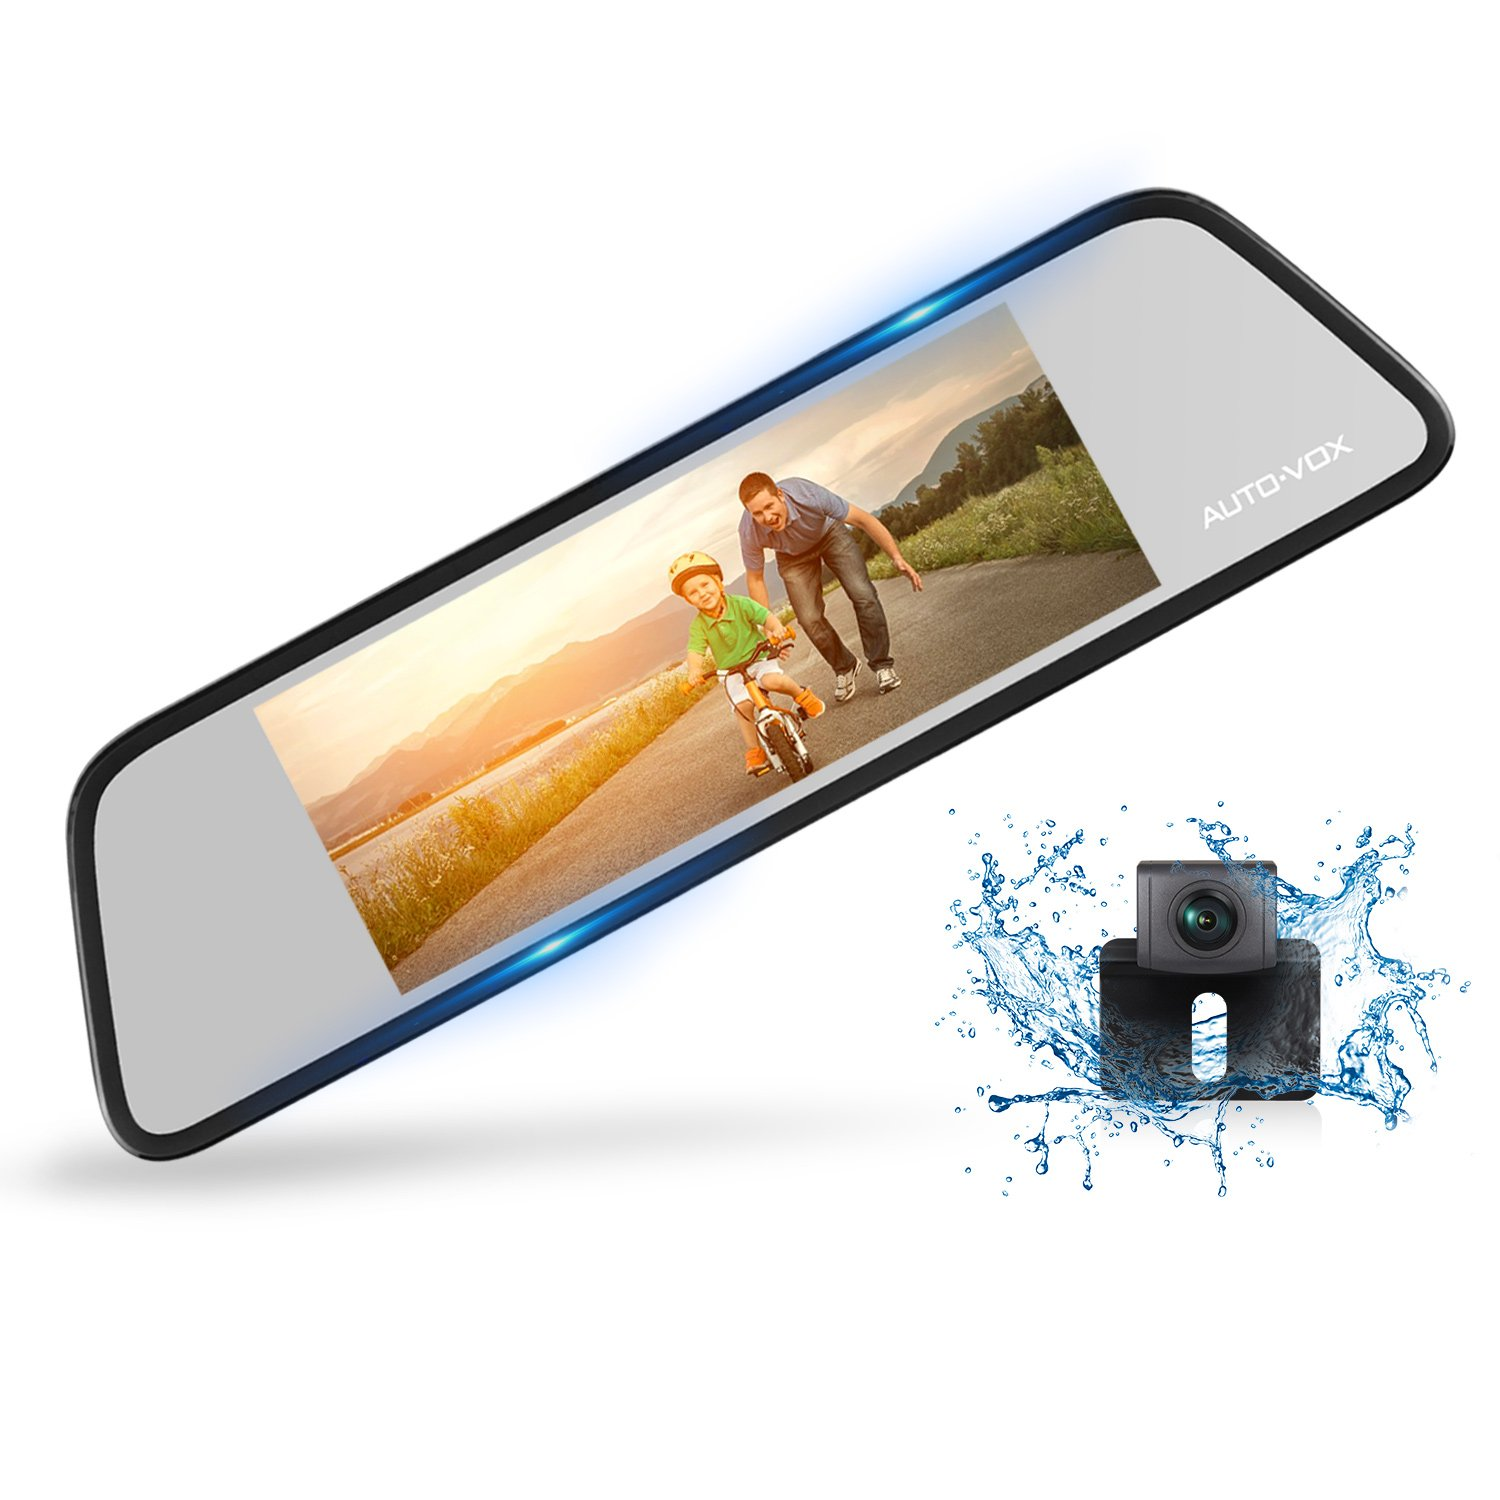 Auto Vox M8 Touch Screen Mirror Dash Cam,1296 P Fhd Front Rear View Mirror Camera And 180°Horizontal View Angle Backup Camera Kit With Lane Departure Warning System, Security Alarm & Motion Detection by Auto Vox